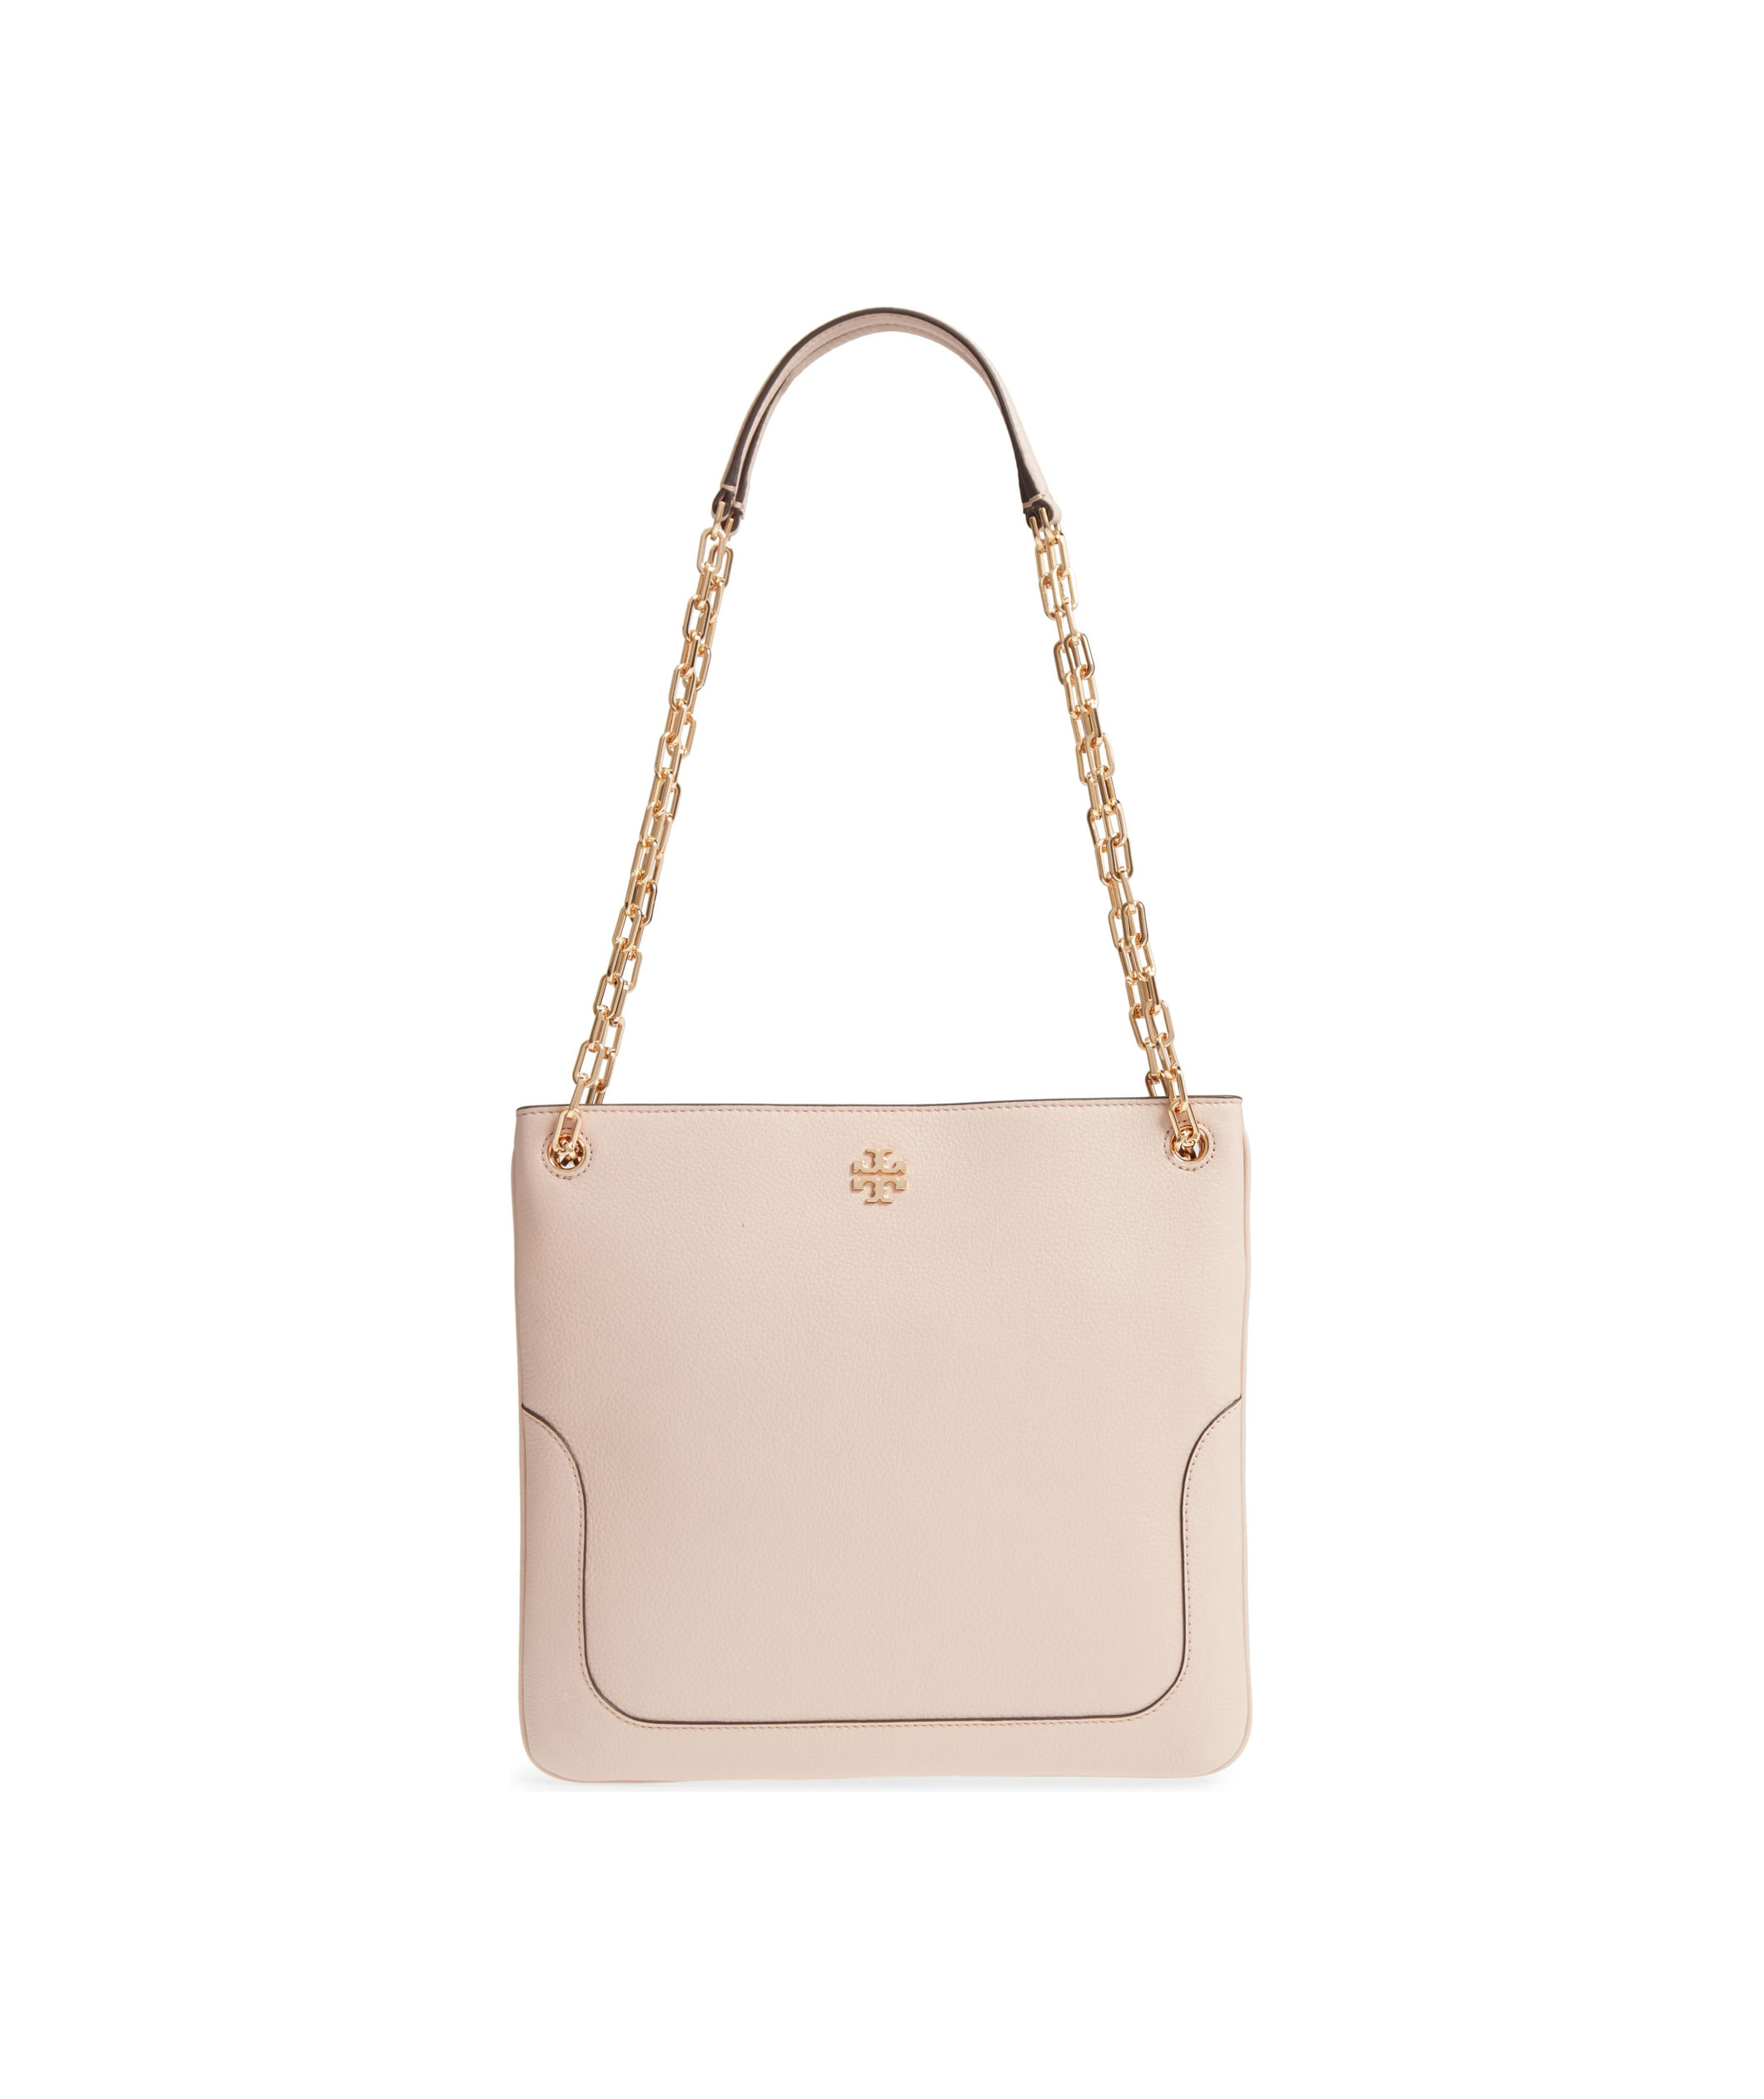 7a85d0941d 5 Designer Handbags We're Obsessed With From the Nordstrom ...